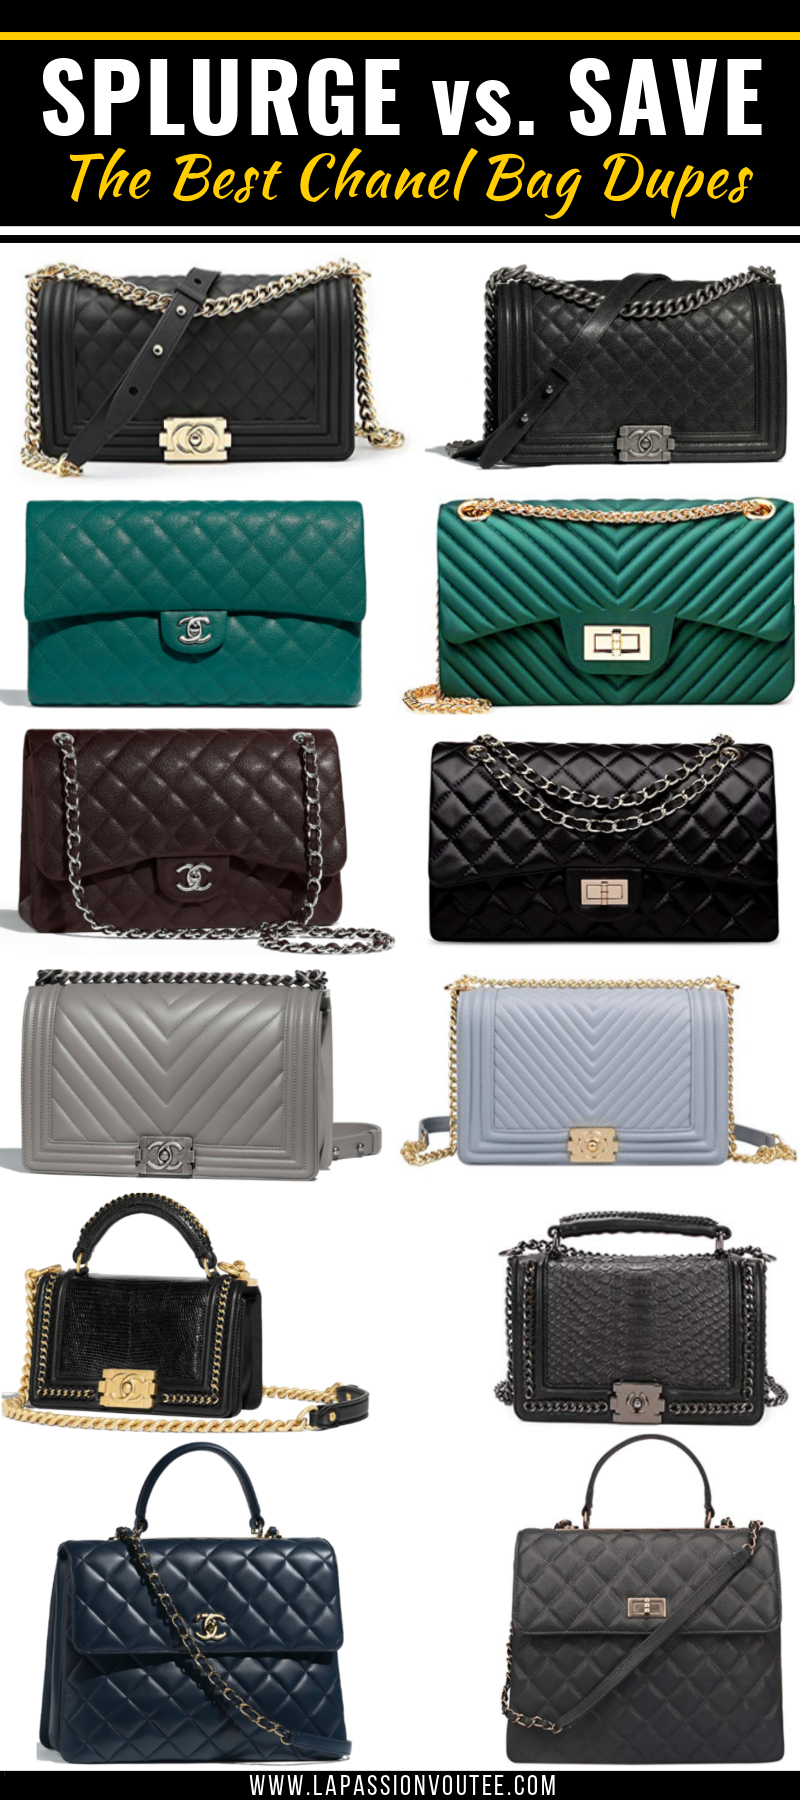 Shopping For Some Chanel Bag Dupes This Is Your Ultimate Guide To Shopping The Most Wanted Coco Chanel Purses On A Bu Chanel Bag Chanel Purse Coco Chanel Bags